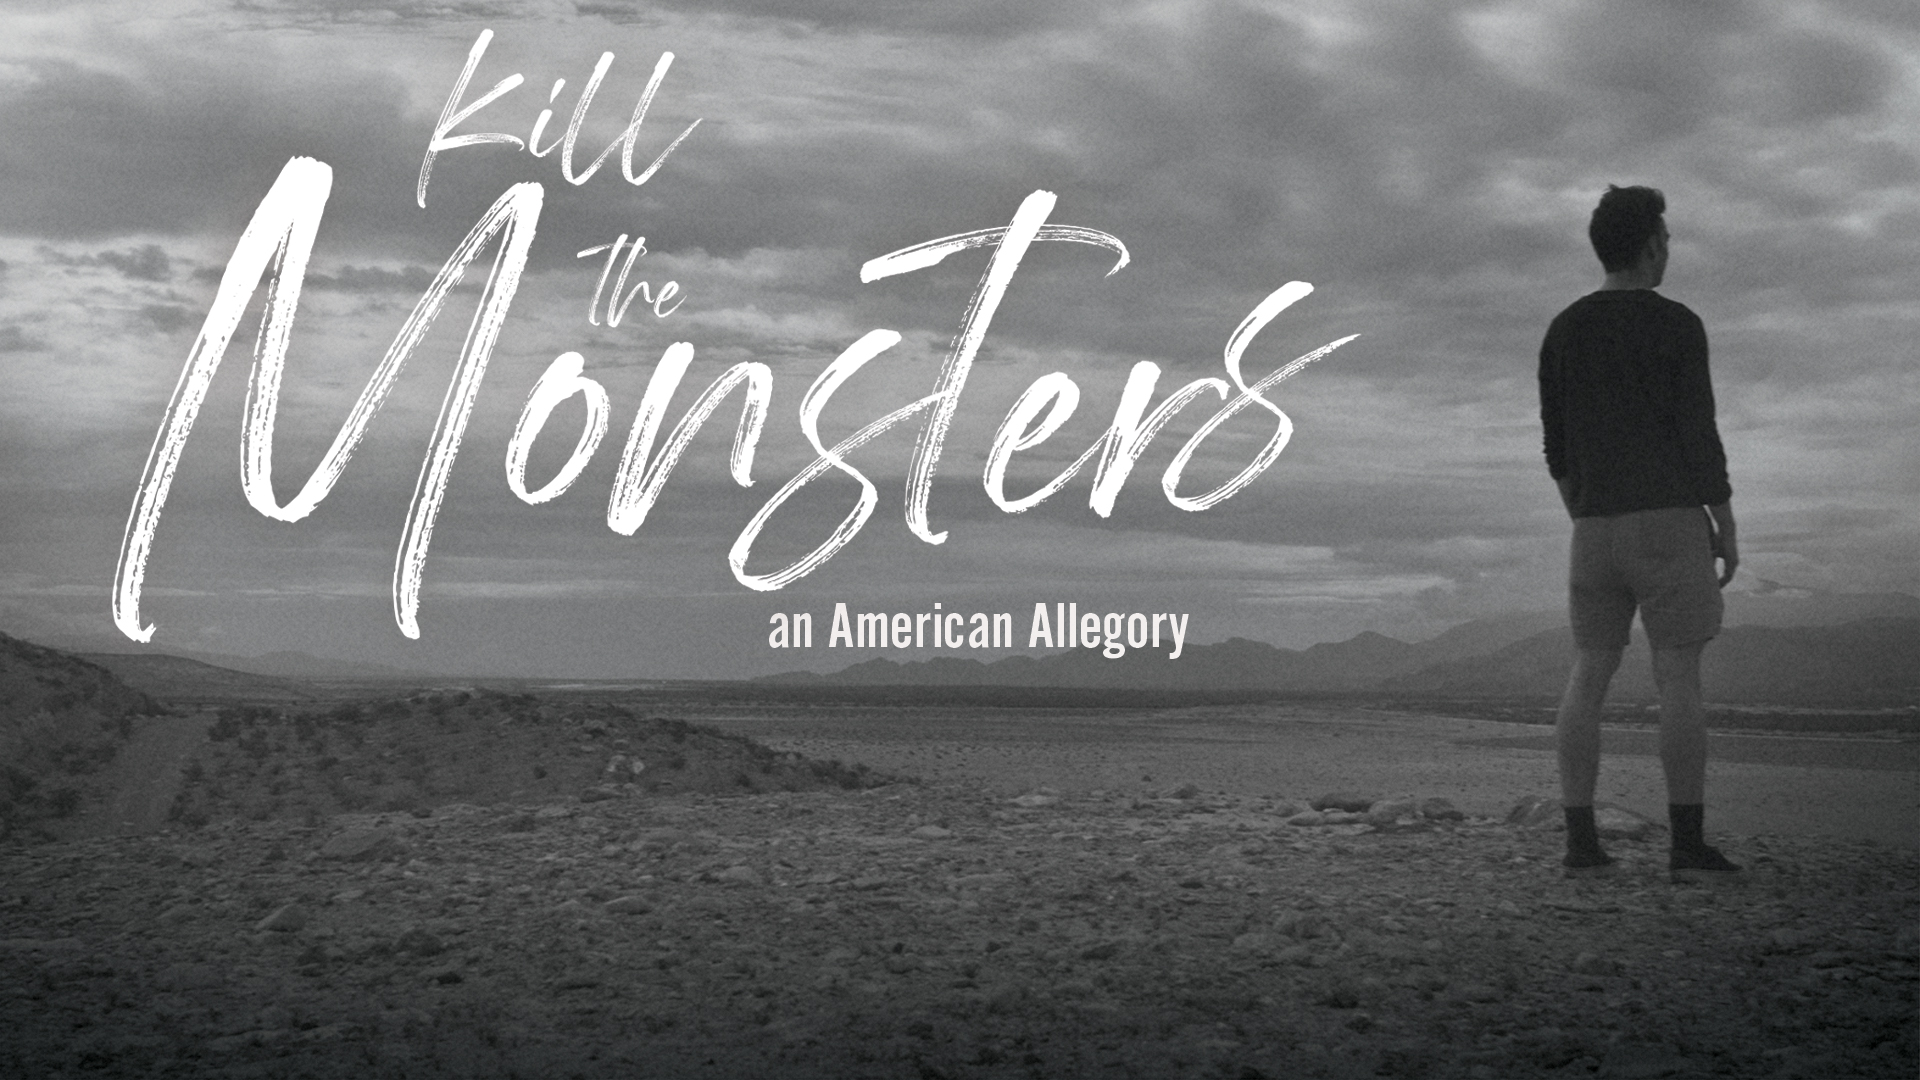 Kill the Monsters